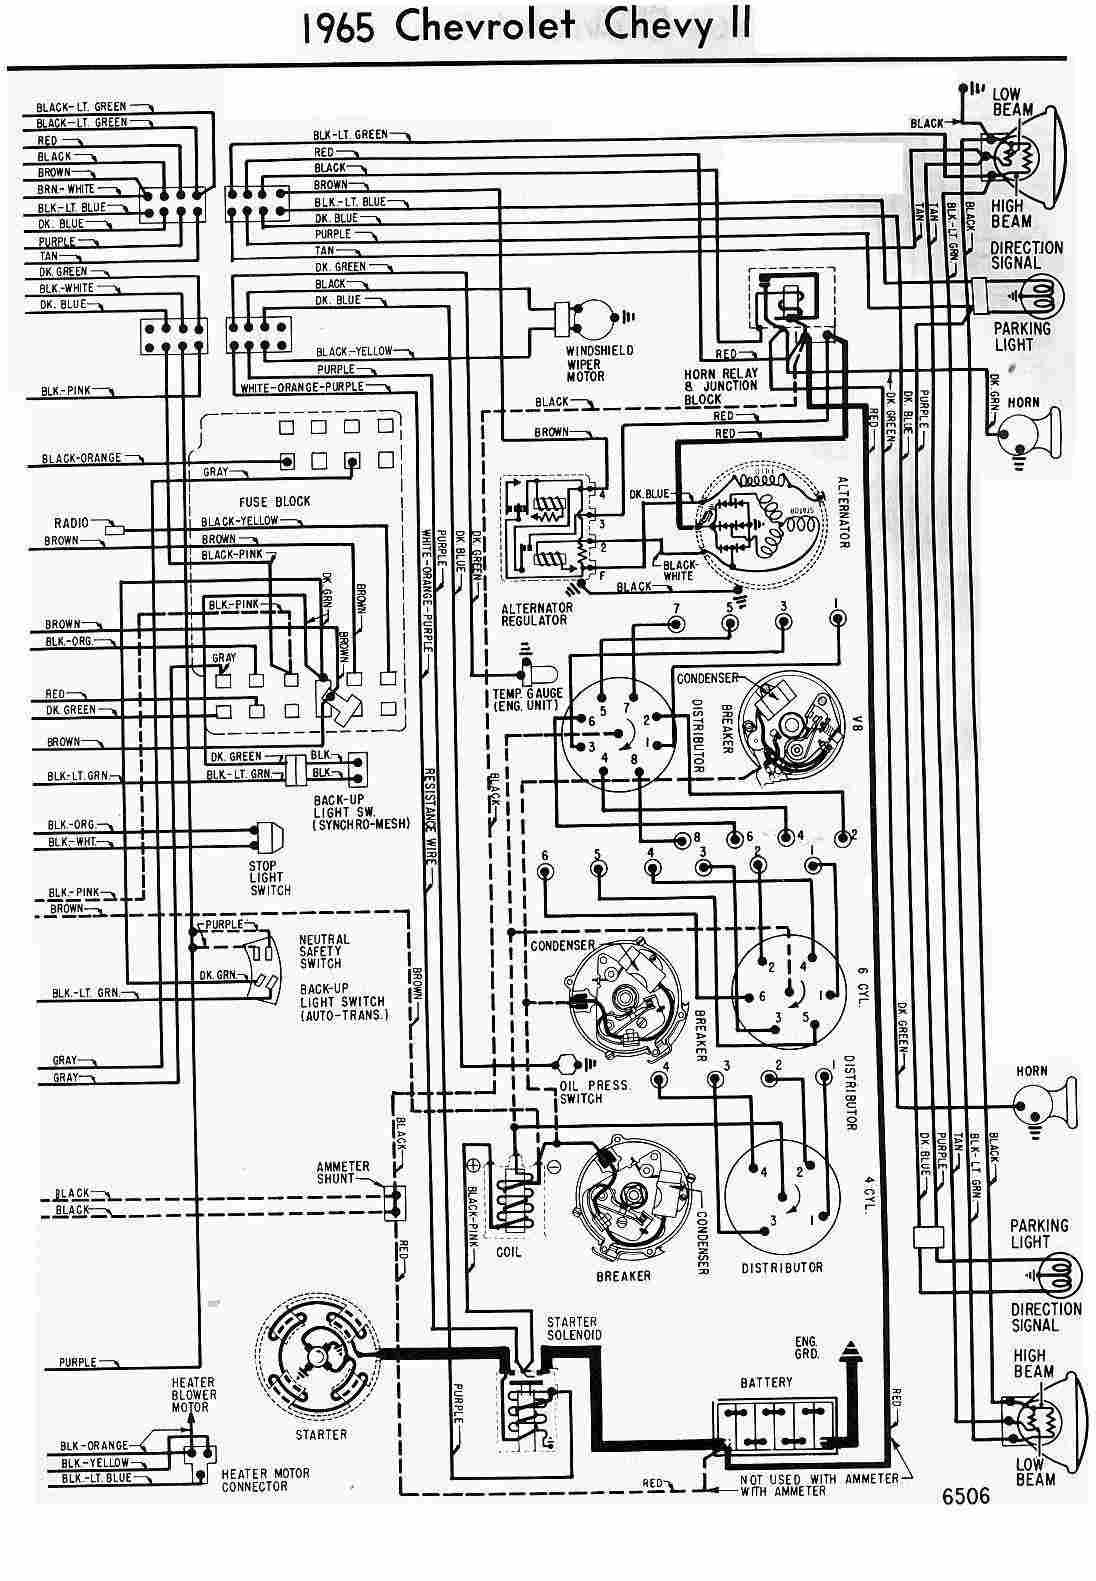 wiring diagram for 68 chevelle free download schematics wiring rh seniorlivinguniversity co